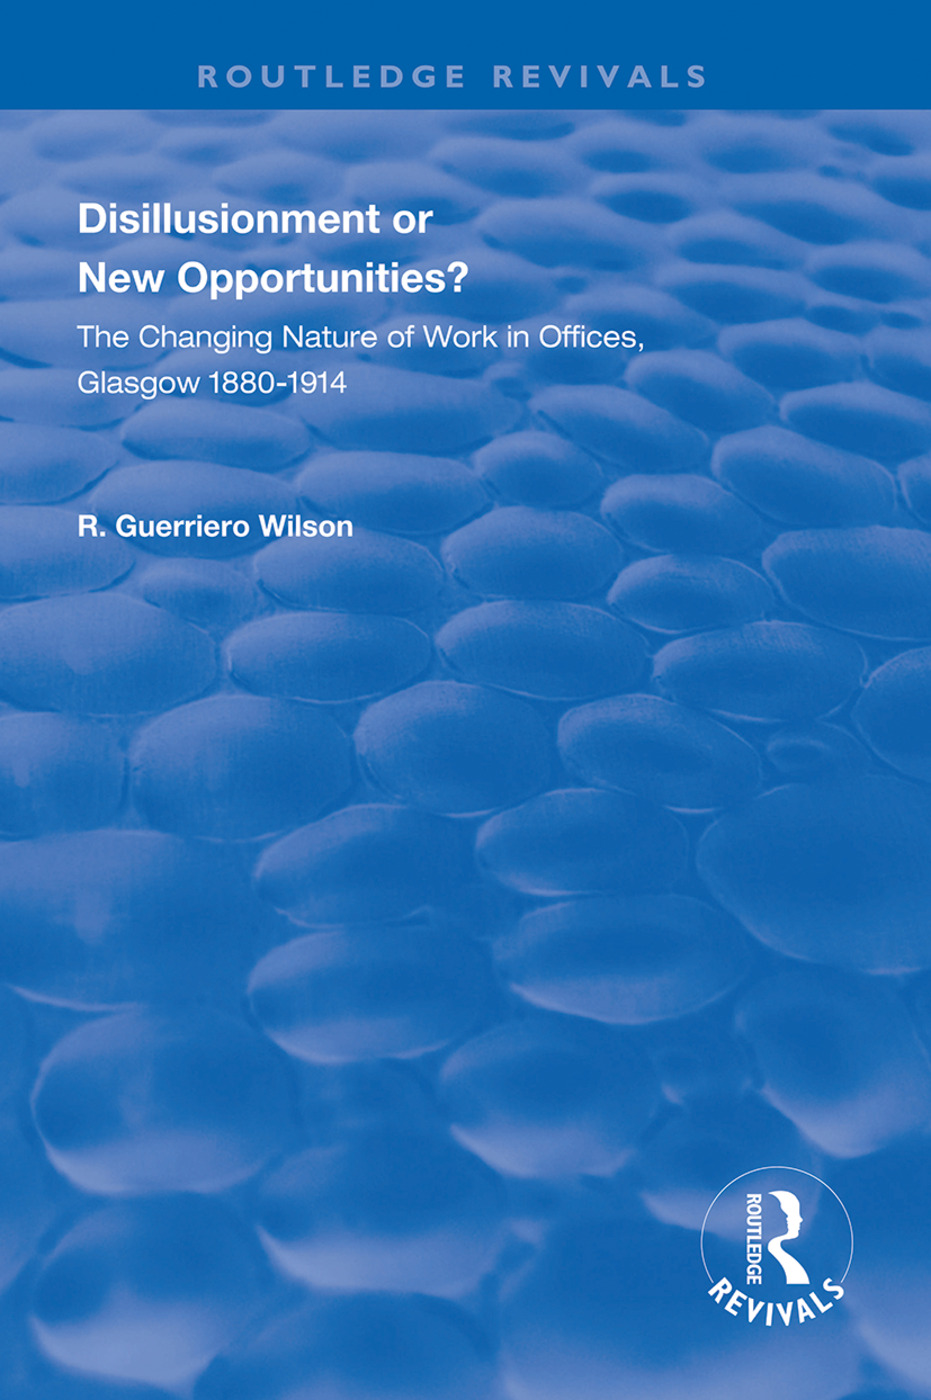 Disillusionment or New Opportunities?